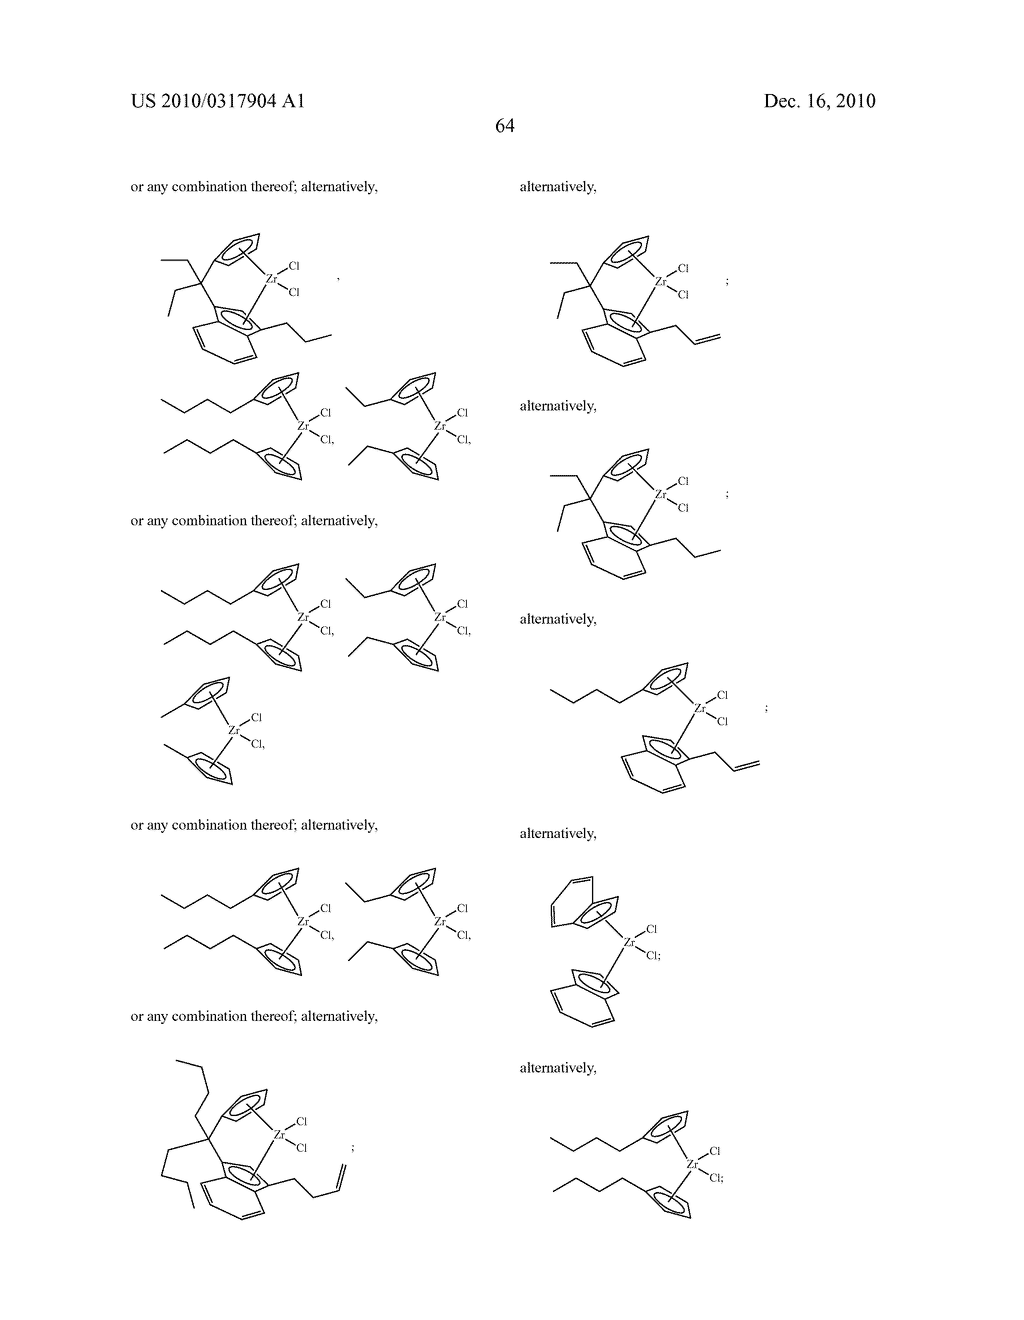 OLIGOMERIZATION OF ALPHA OLEFINS USING METALLOCENE-SSA CATALYST SYSTEMS AND USE OF THE RESULTANT POLYALPHAOLEFINS TO PREPARE LUBRICANT BLENDS - diagram, schematic, and image 76